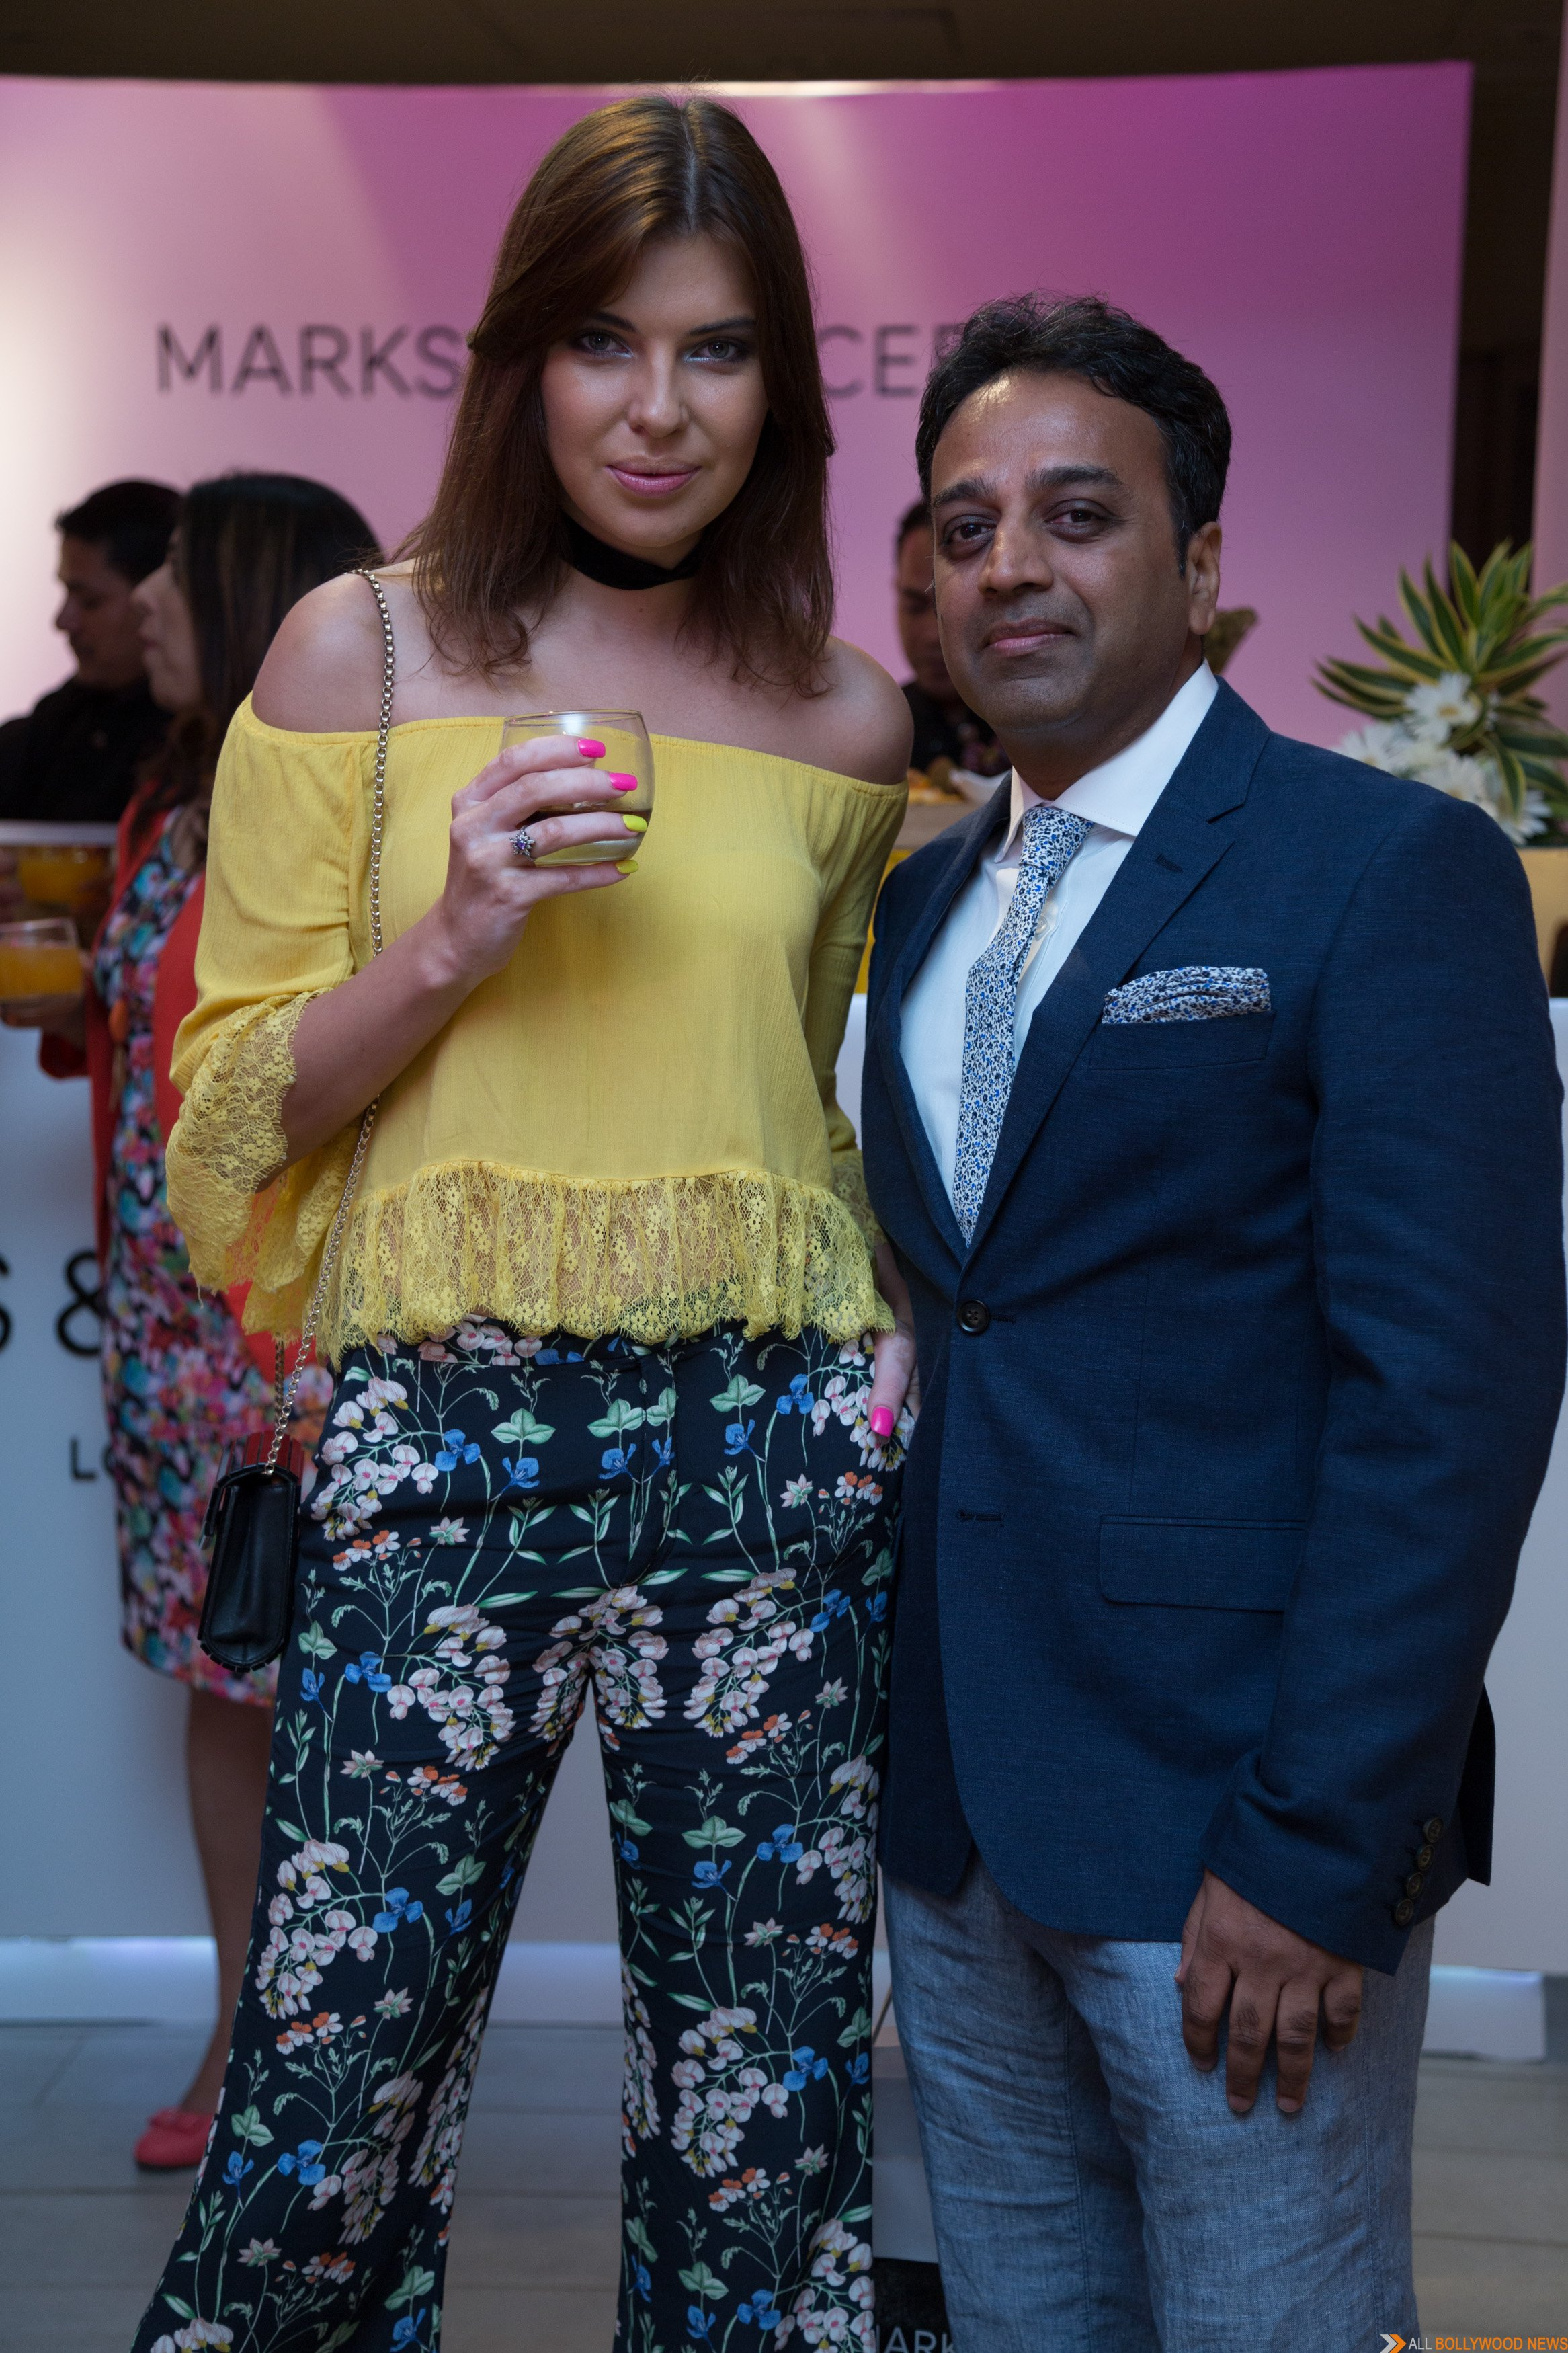 Aditi Rao Hydari At Marks And Spencer Autumn 16 Collection Launch At Mall  Of India, Noida - All Bollywood News